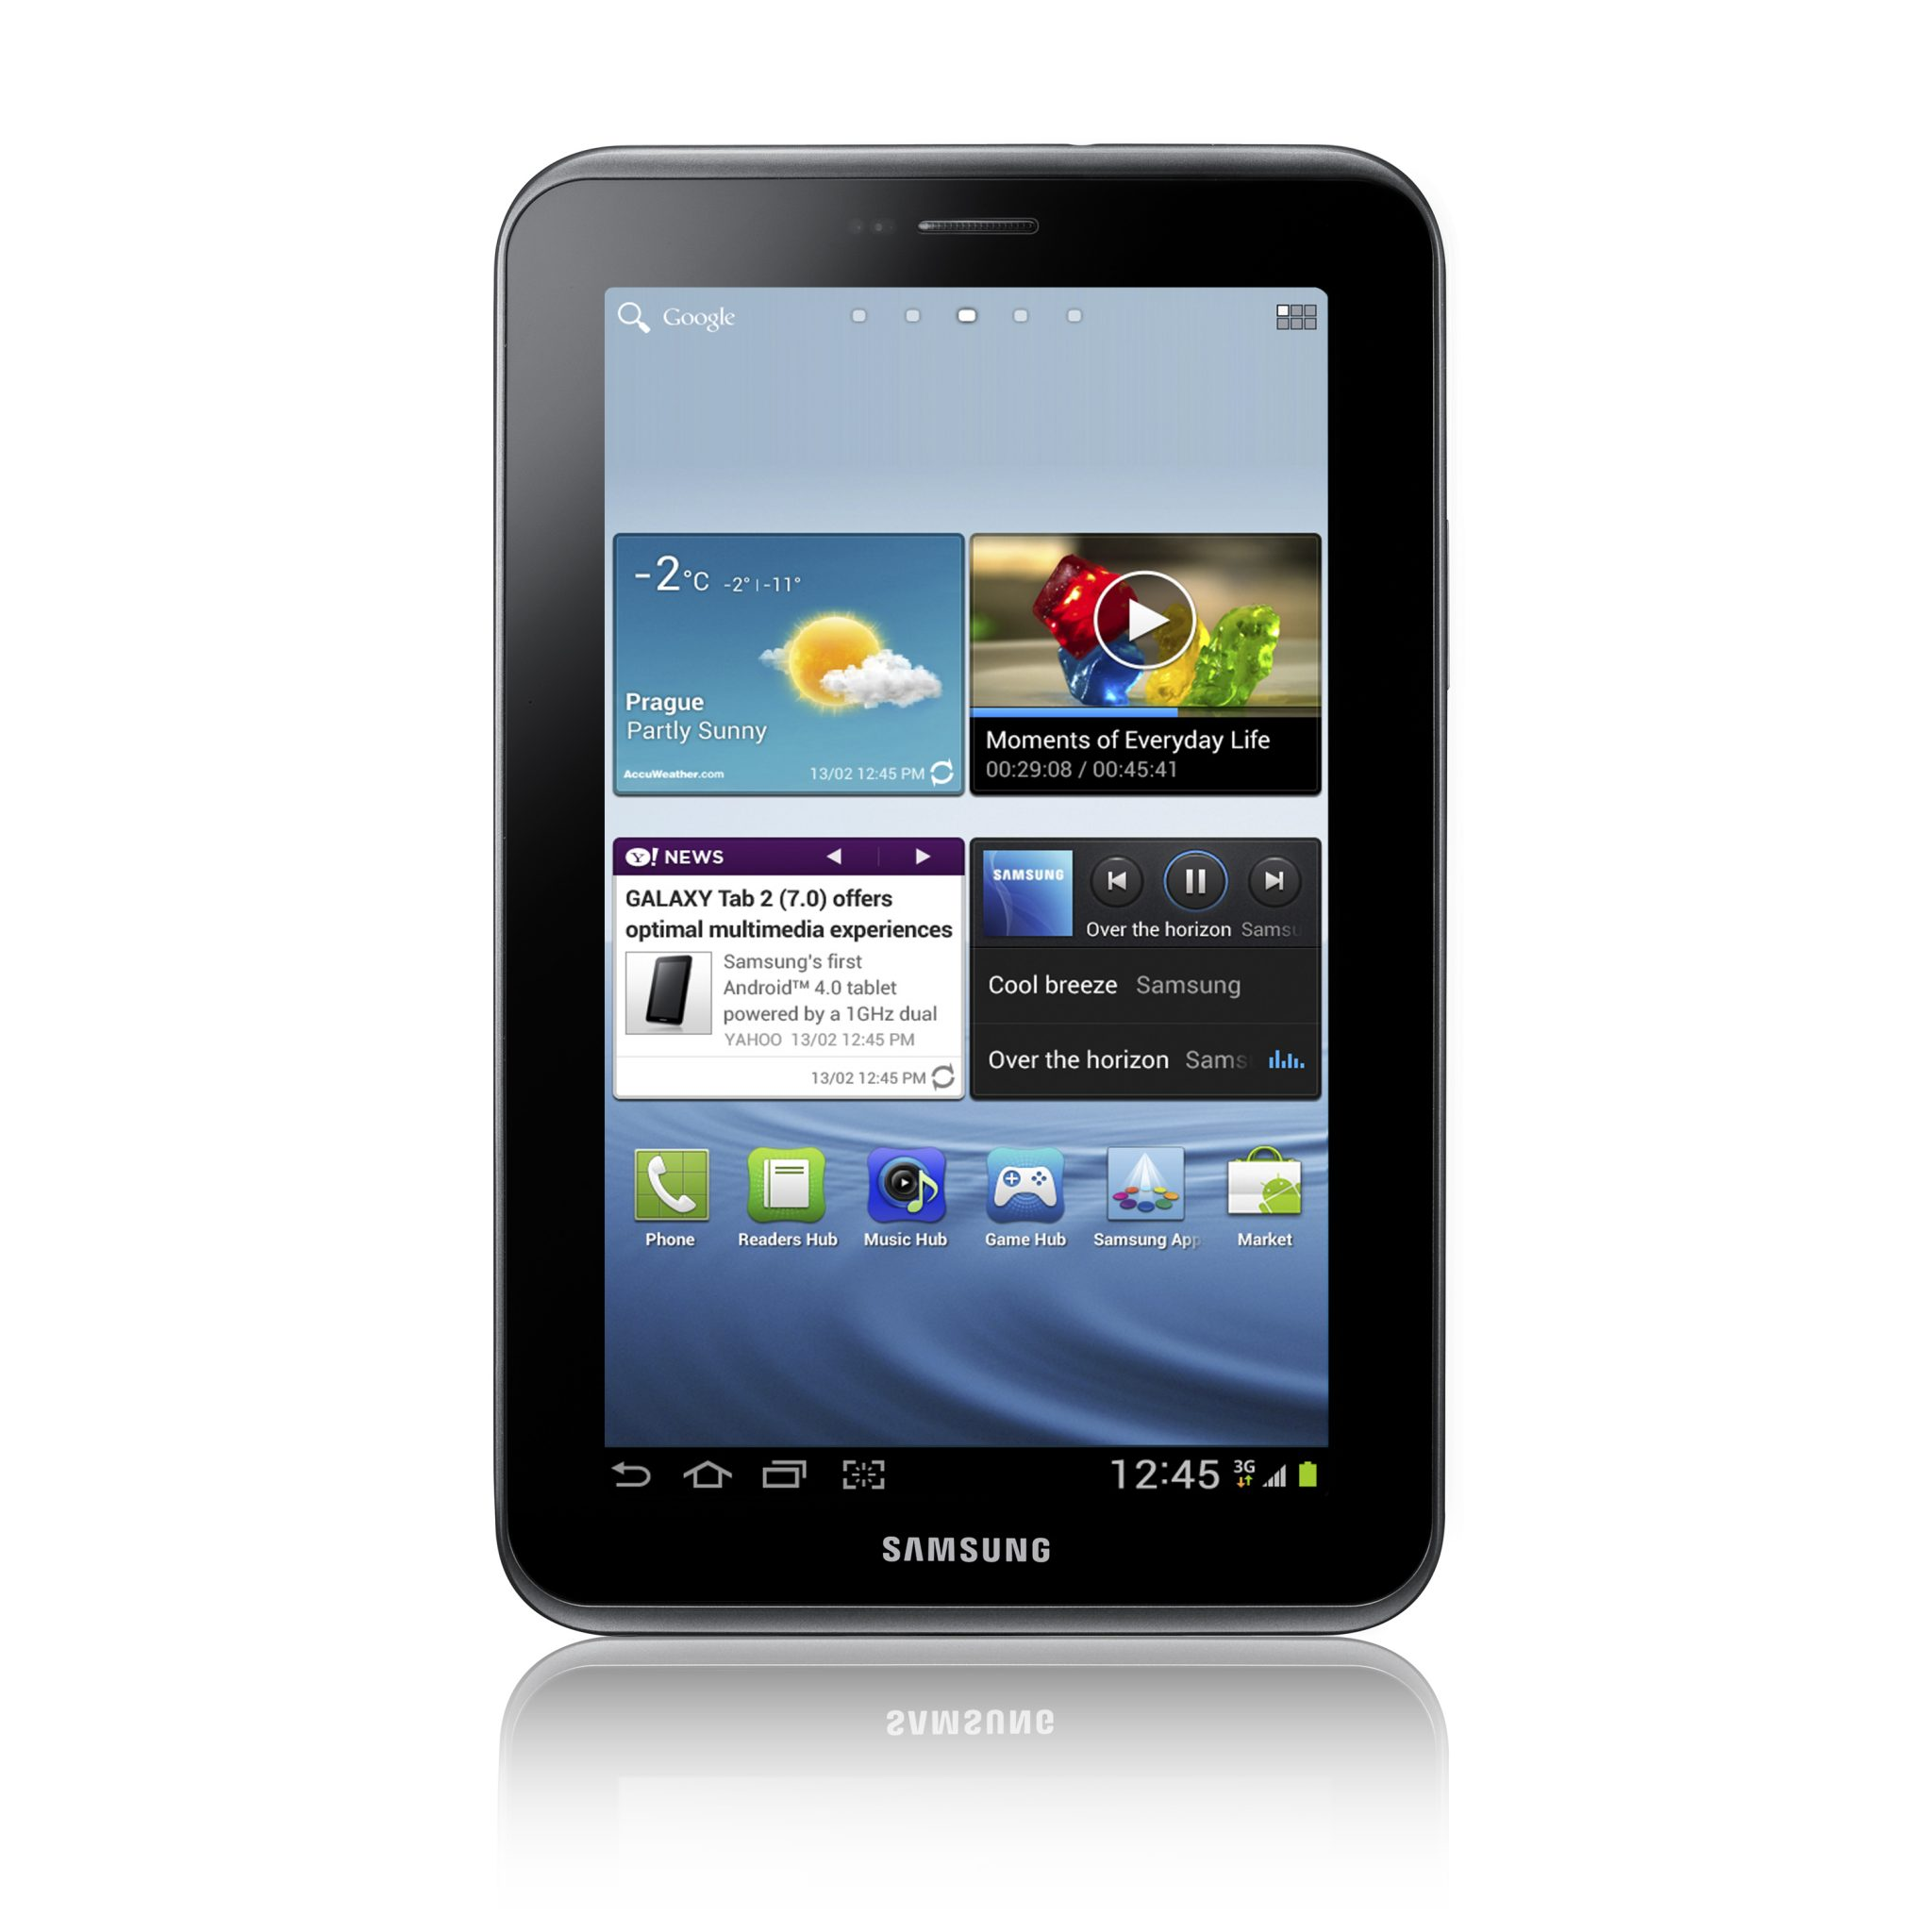 Samsung Galaxy Tab 2 7.0 Student Edition goes on sale tomorrow for $250